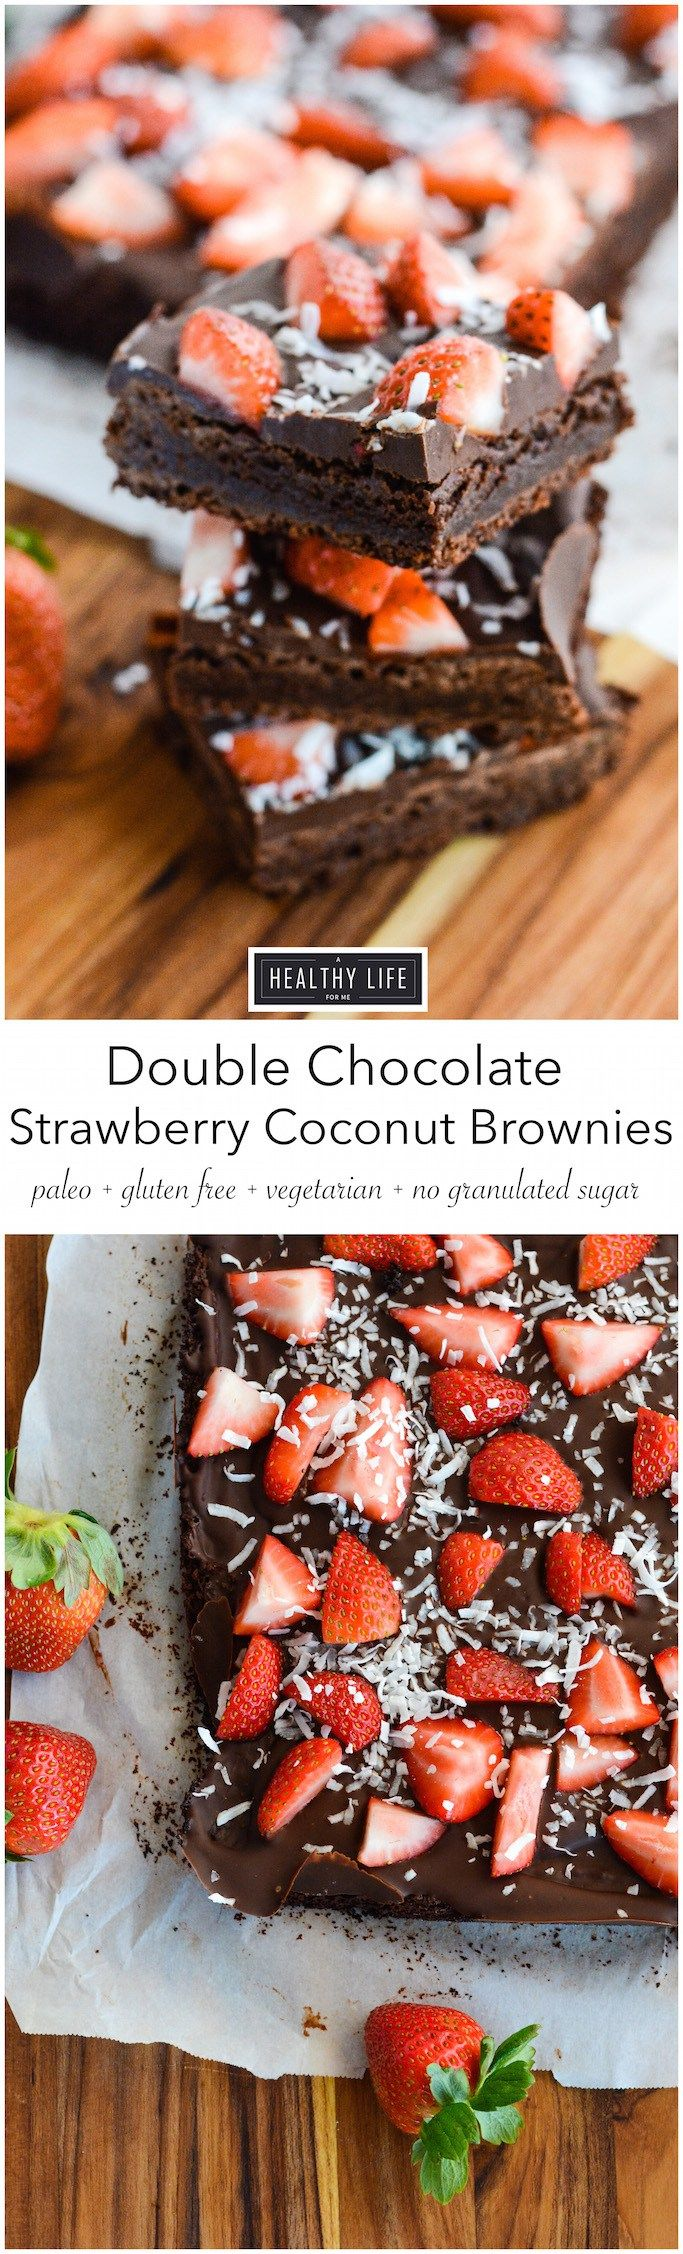 Double Chocolate Strawberry Coconut Brownies - a dense, incredible tasting brownie, with a double layer of chocolate topped with sweet fresh organic strawberries and unsweetened shredded coconut. - no flour, granulated sugar, or butter. Making it a very clean, gluten-free, grain free, soy free, vegetarian and paleo recipe. :  A Healthy Life For Me